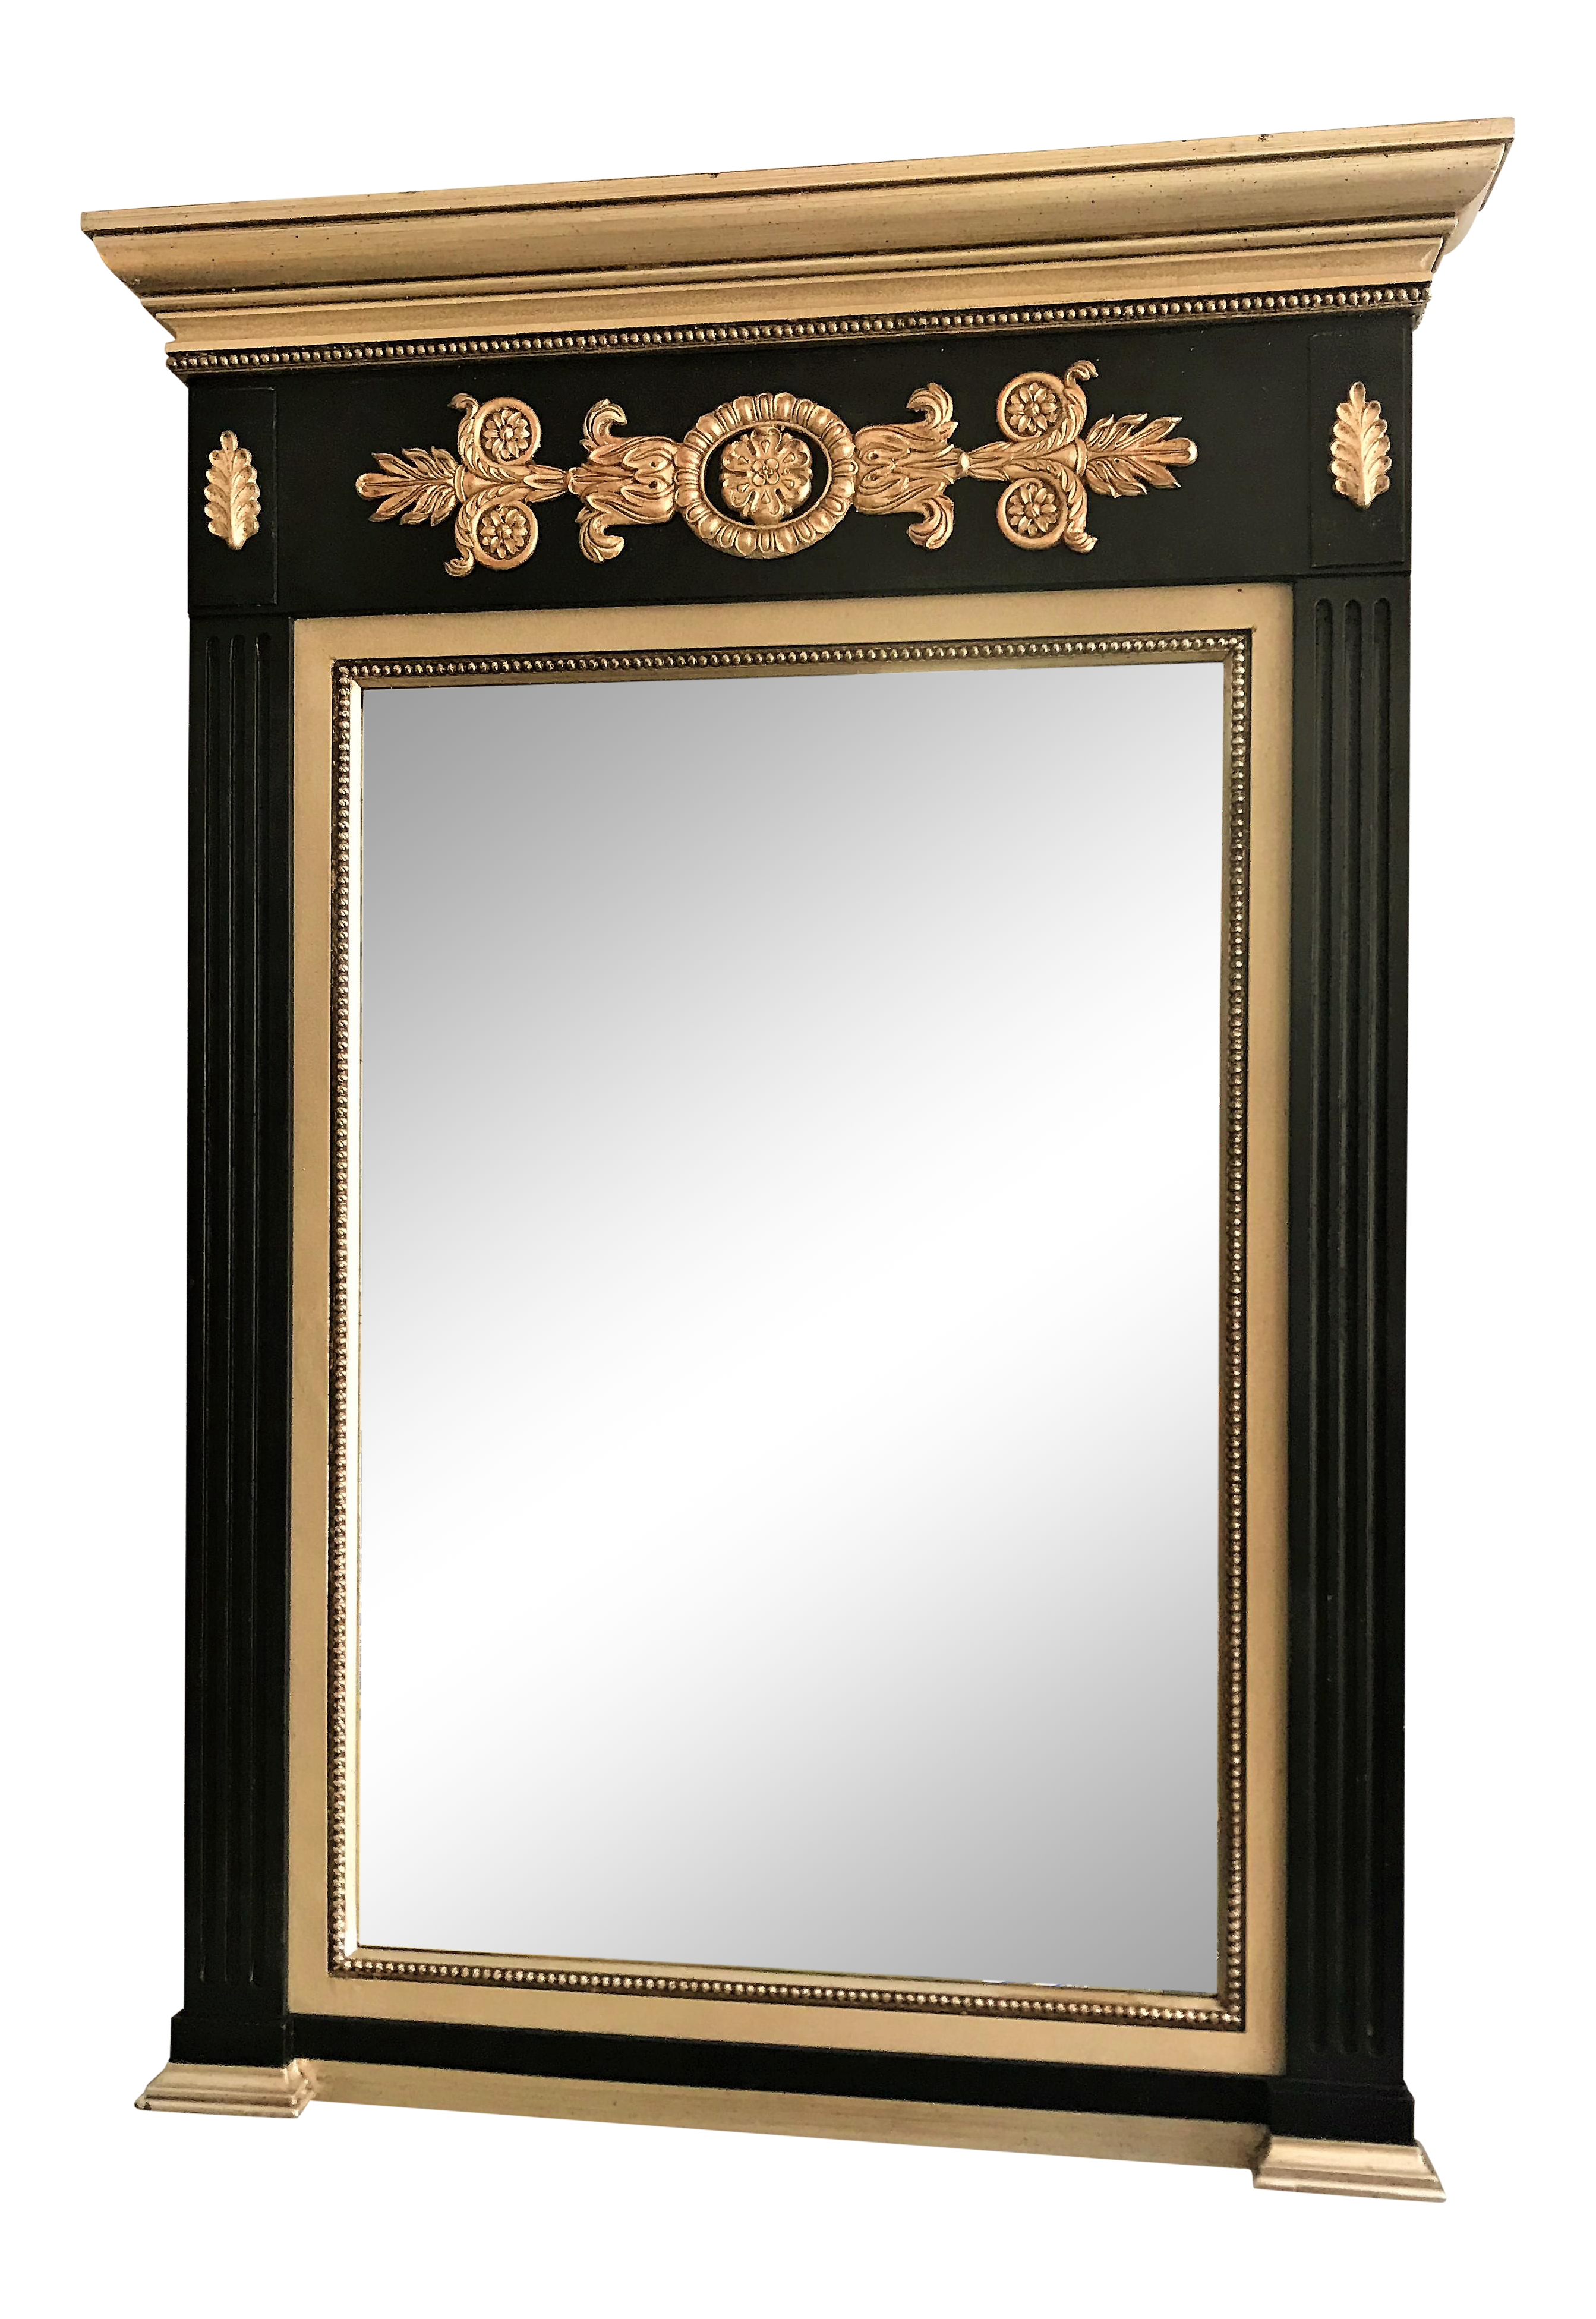 Black And Silver Gilt Look Trumeau Mirror In 2021 Trumeau Mirror Black Mirror Frame Mirror